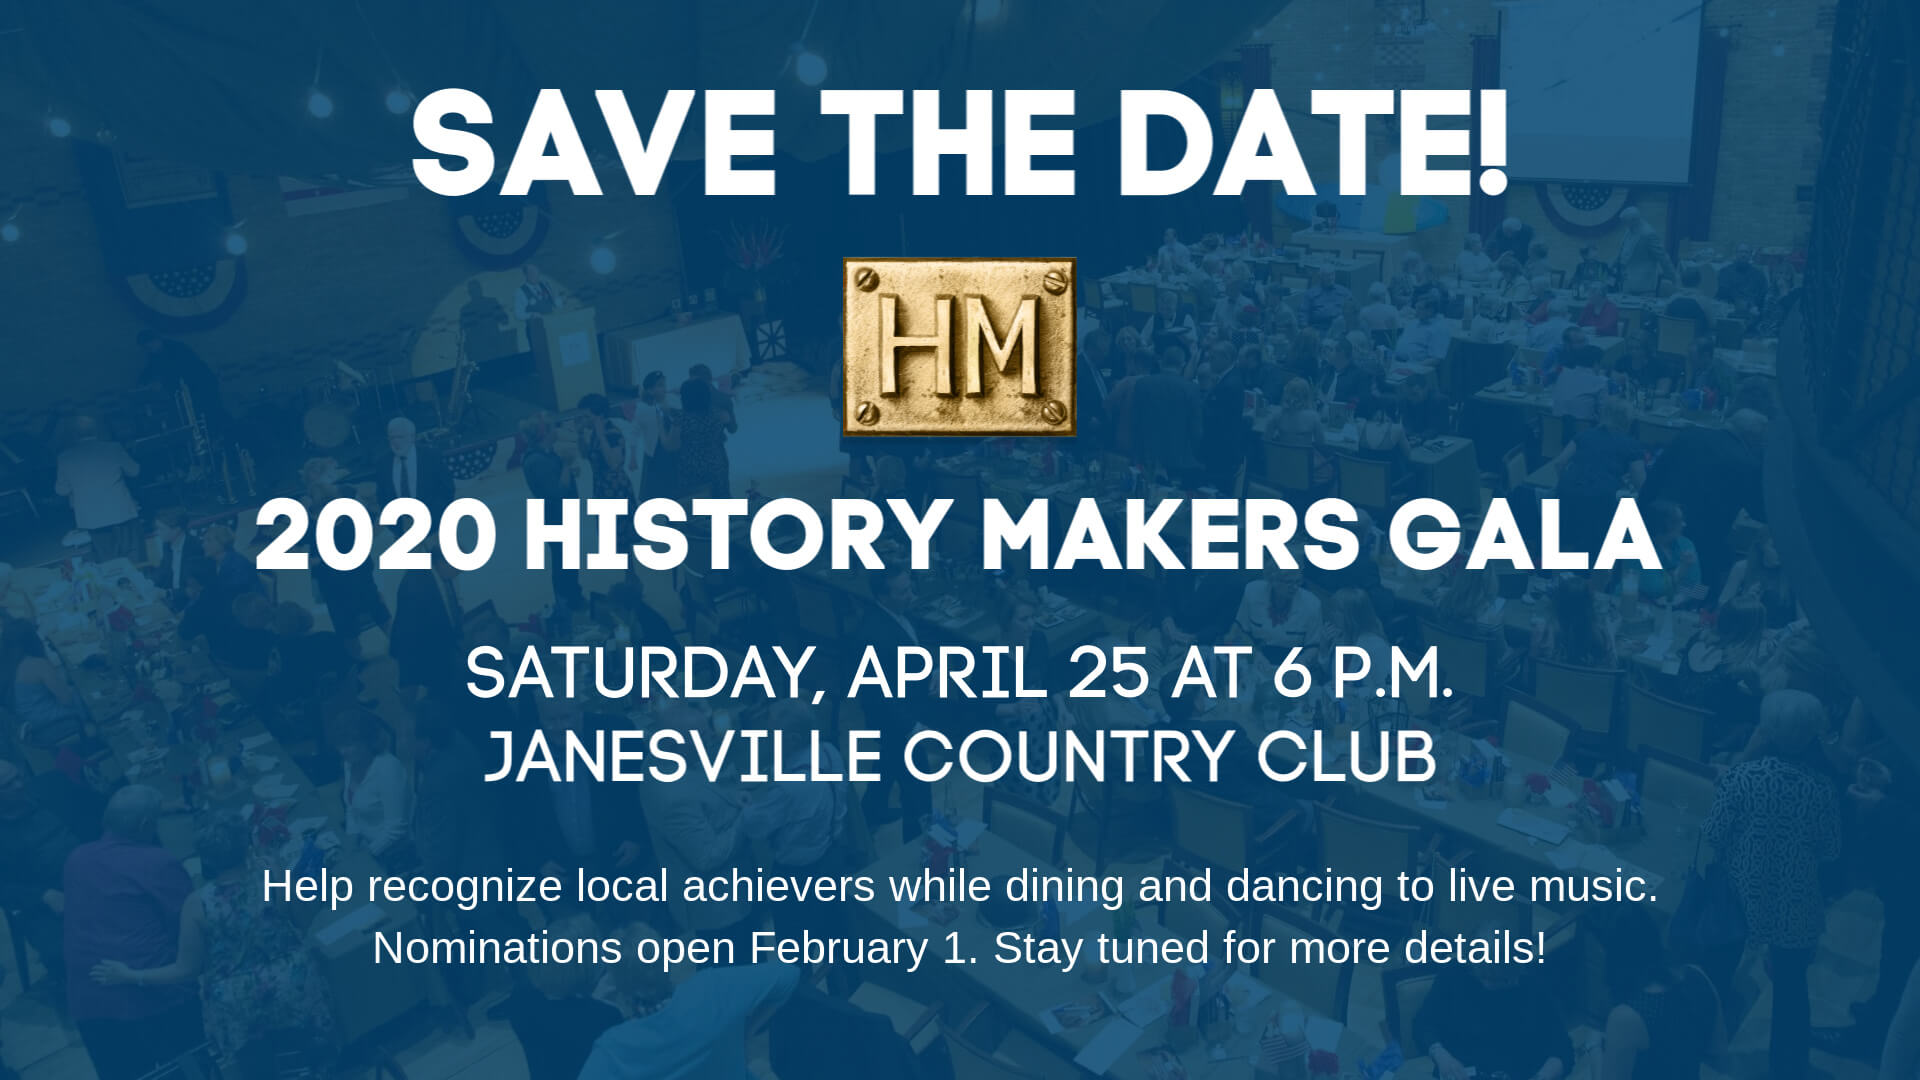 2020 History Makers Gala Save the Date